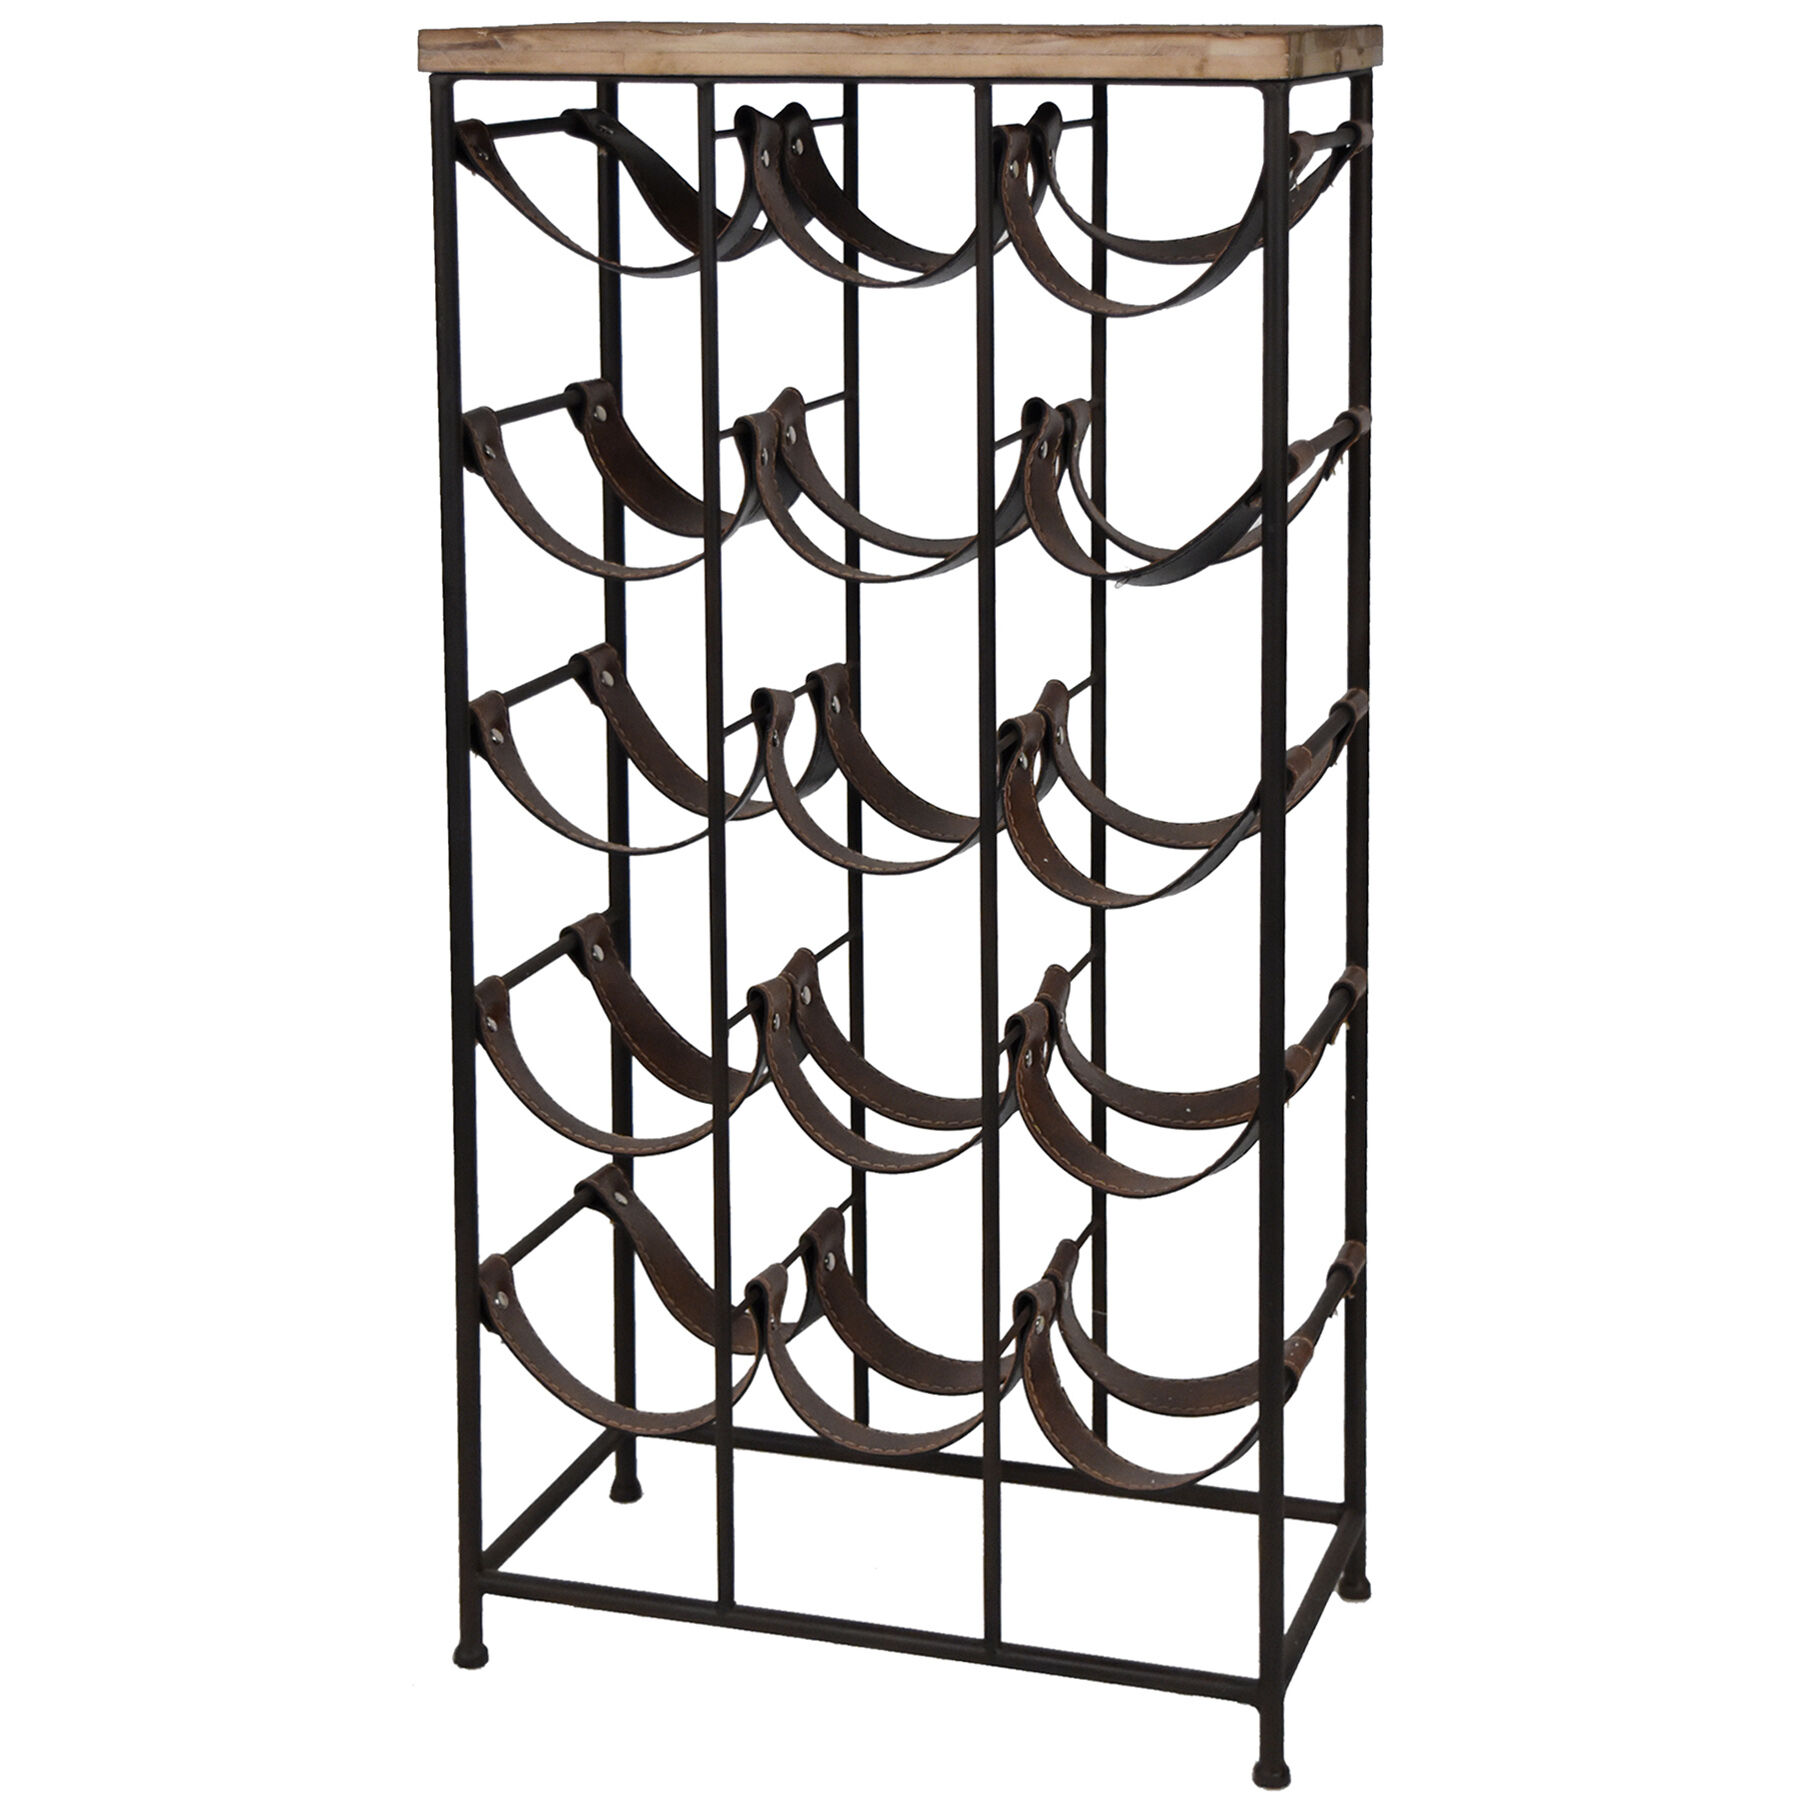 Metal Wine Racks 15 Slot Metal Wood Wine Rack